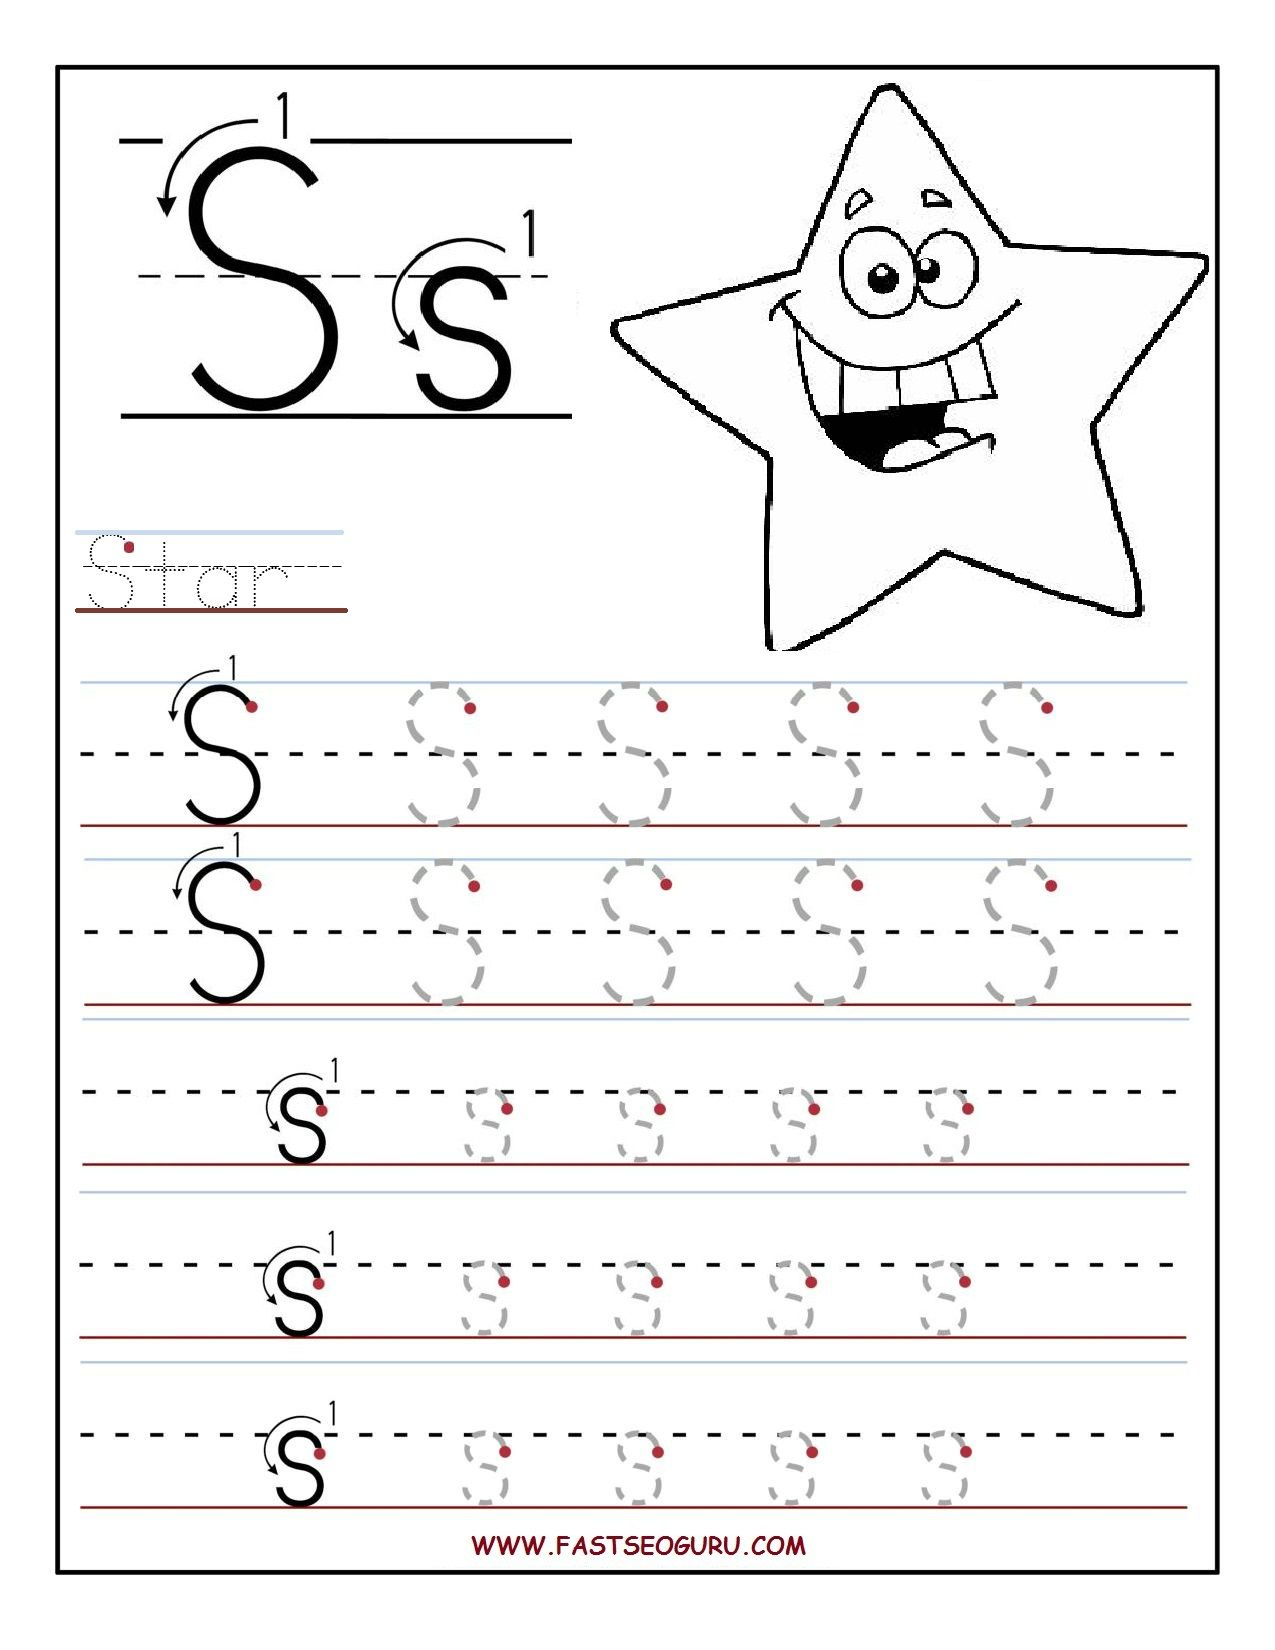 Printable Cursive Alphabet Worksheets Abitlikethis intended for Printable Tracing Letters For Toddlers